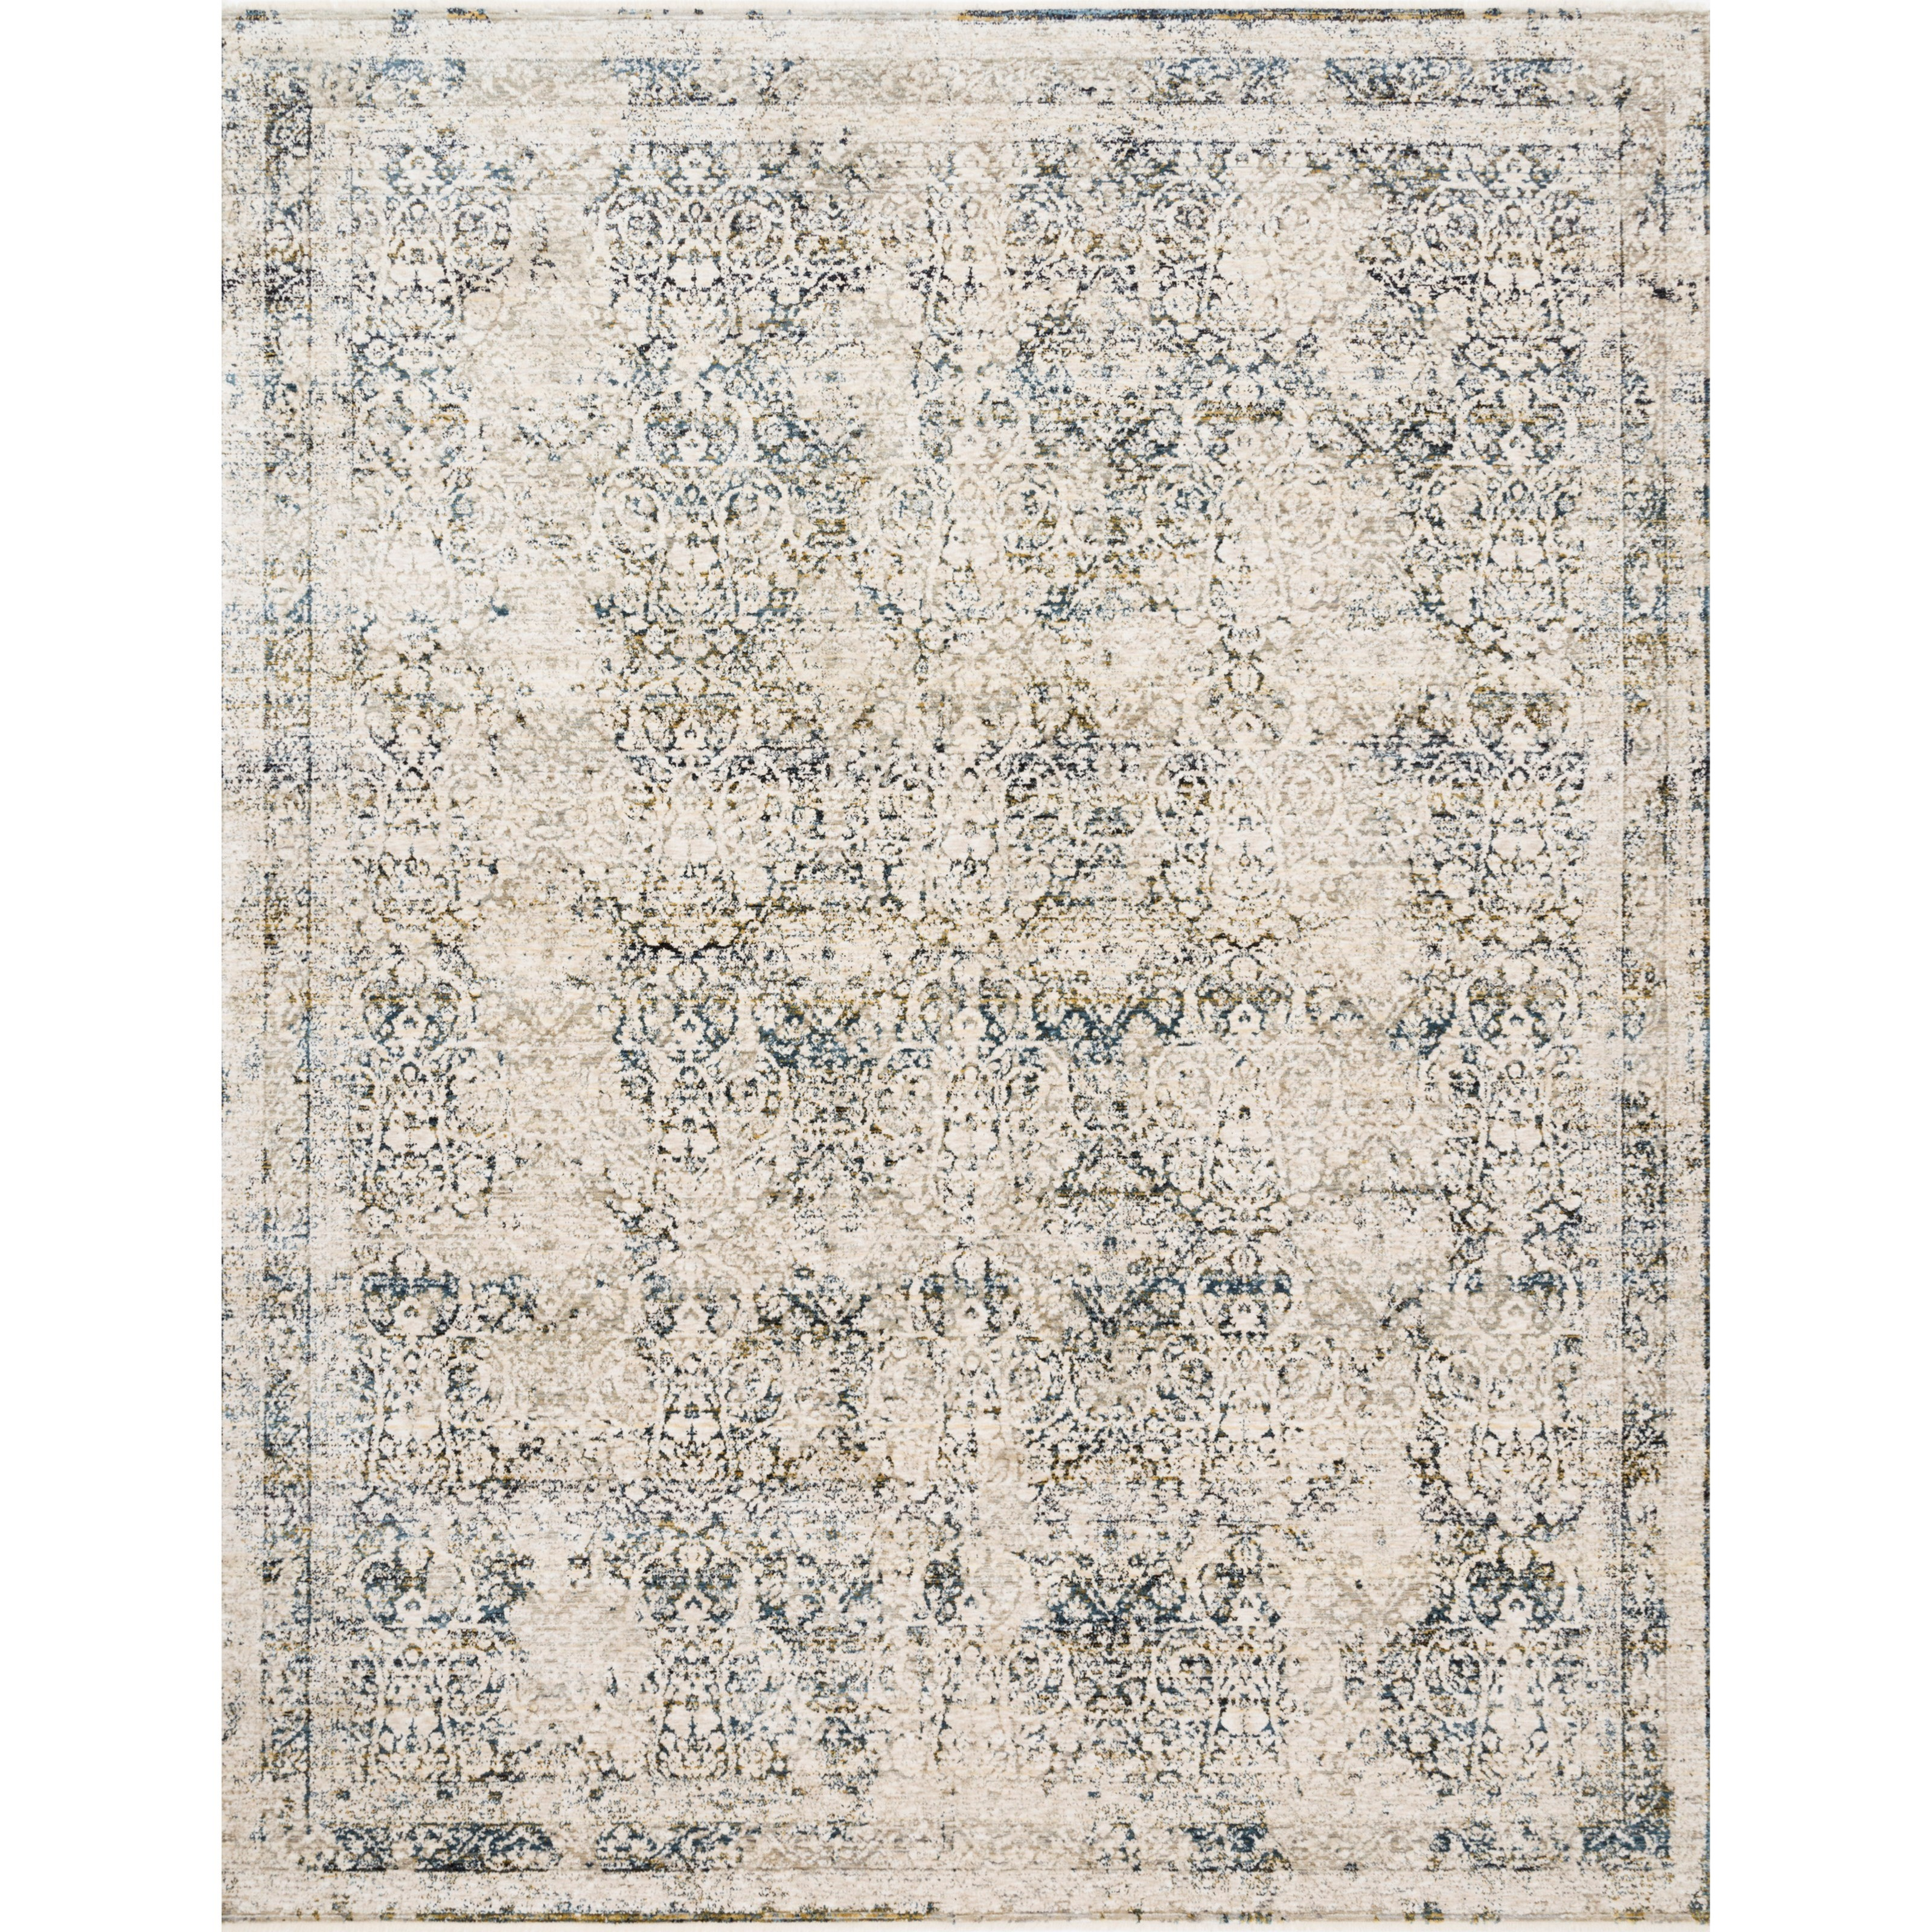 """Theia 2'10"""" x 8' Natural / Ocean Rug by Loloi Rugs at Virginia Furniture Market"""